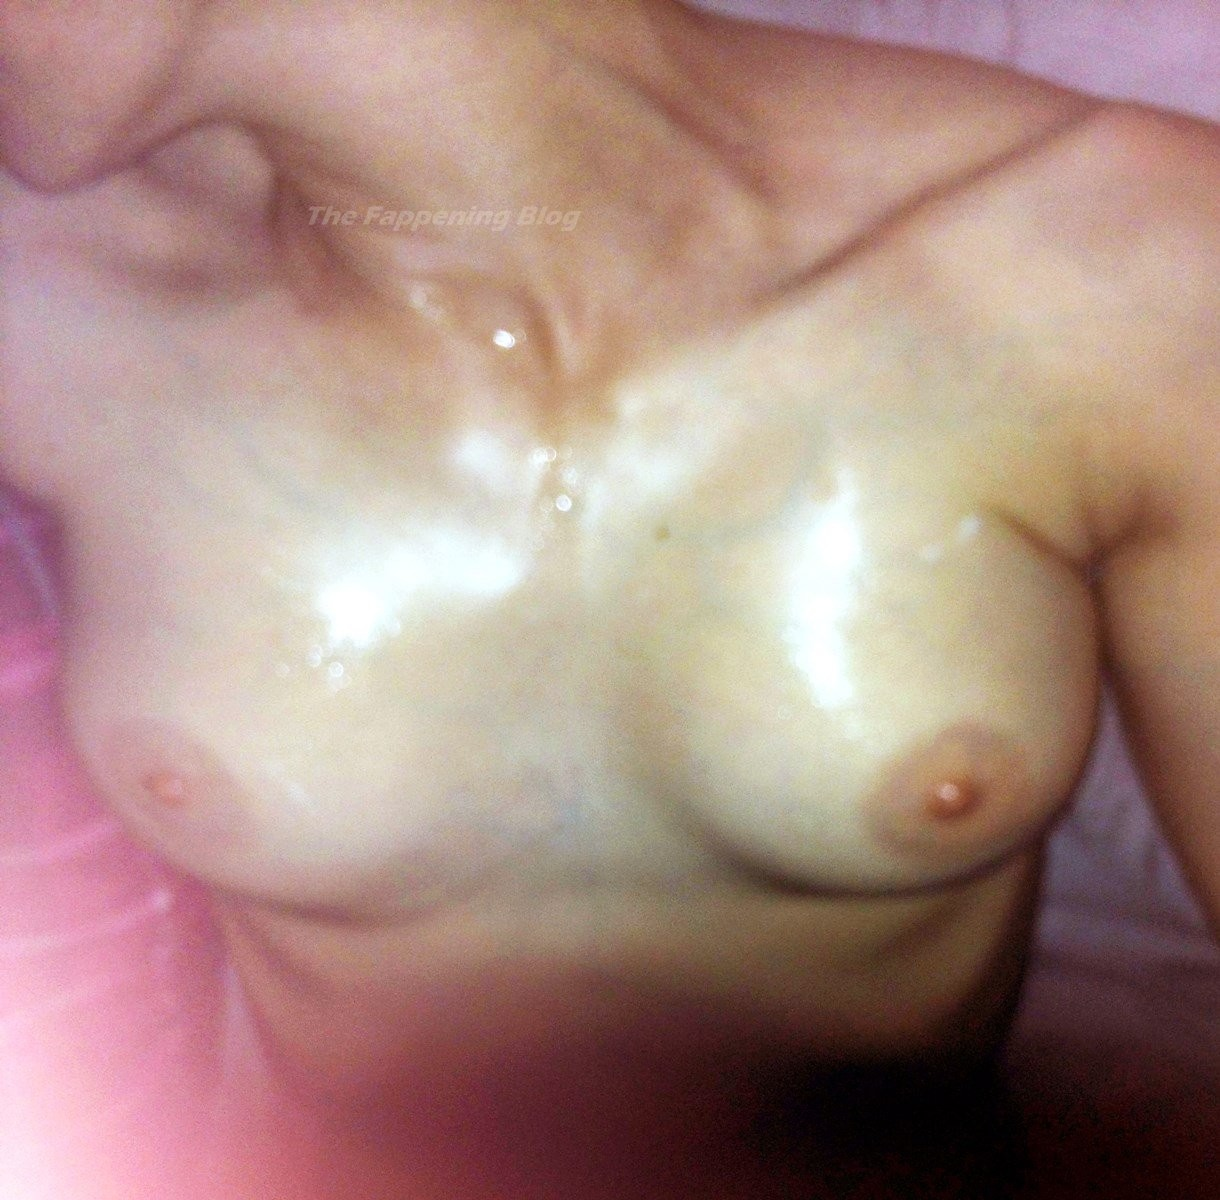 Sarah Silverman Nude Leaked The Fappening 0010